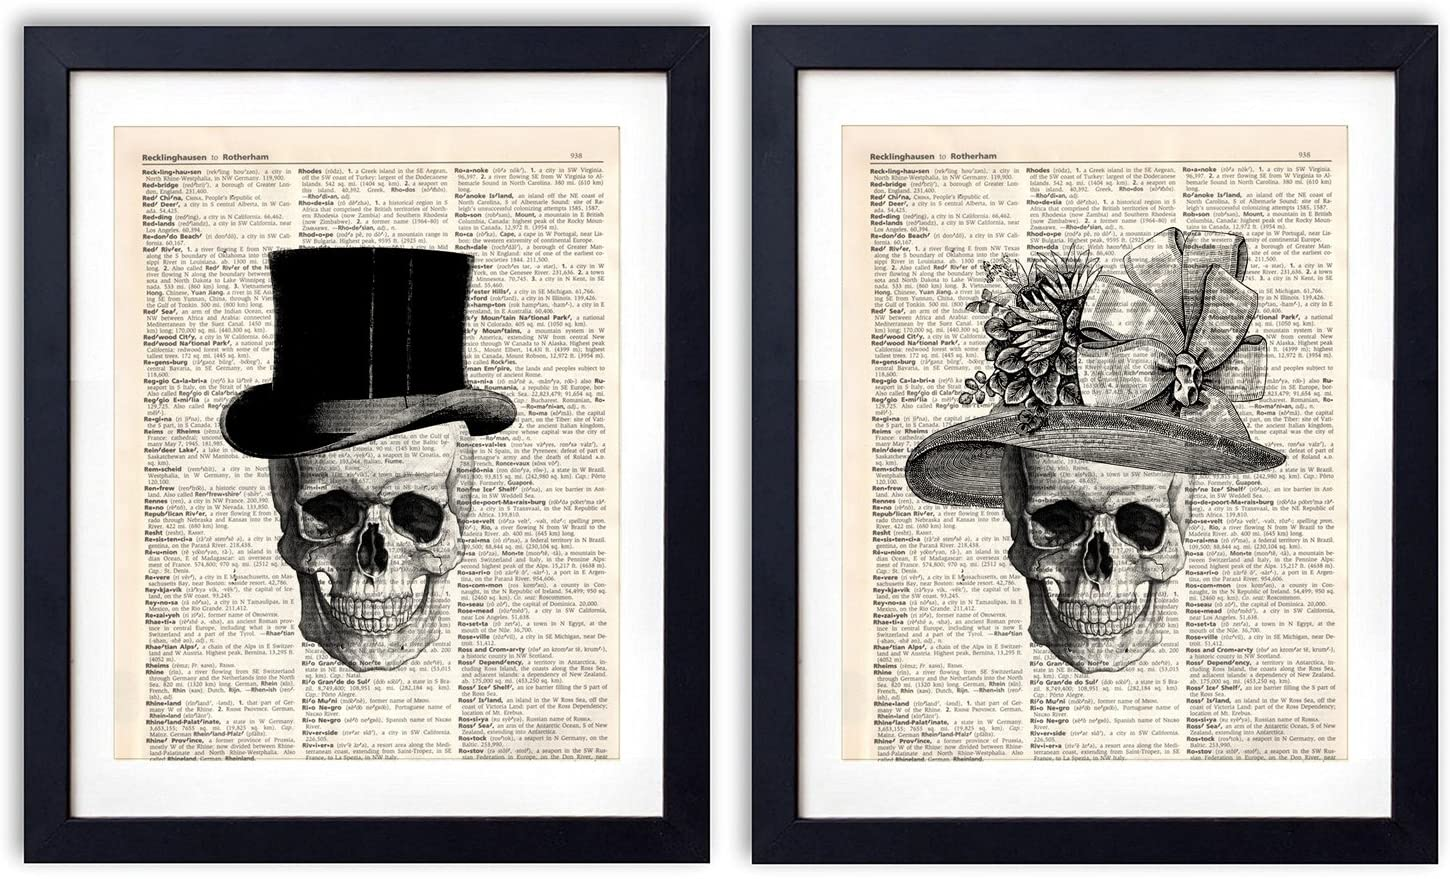 akeke Skull Decor Vintage Dictionary Art Print Two Set - Skull Decorations Gentleman Lady Hat - Bone Art Wall Decor 8x10 inch Unframed Skull Couples Gifts for Women Men